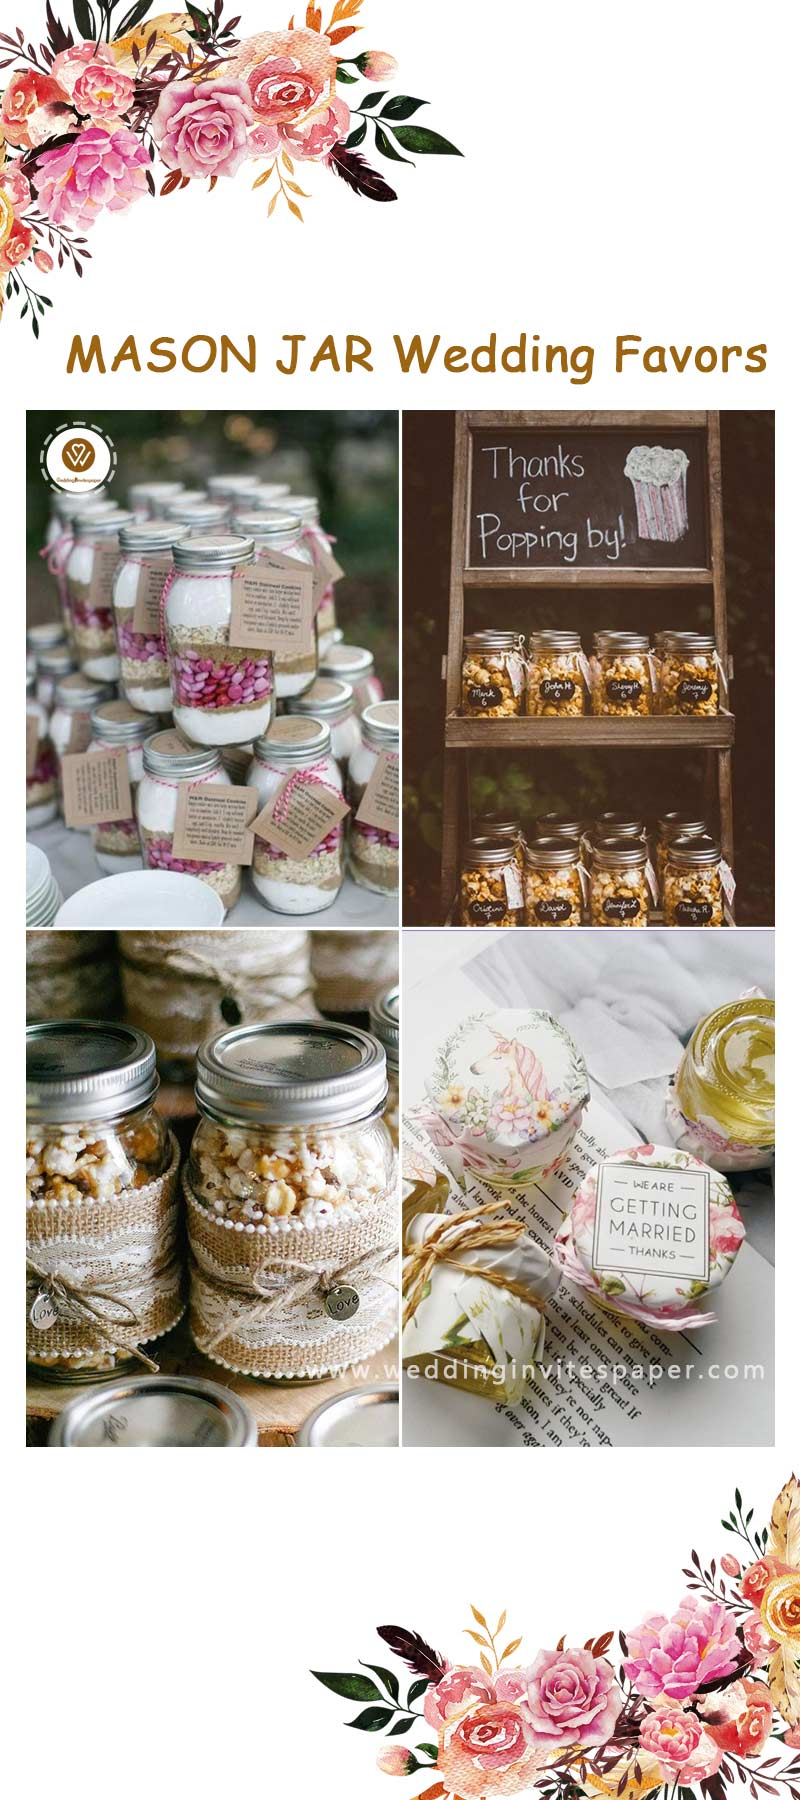 MASON-JAR-Wedding-Favors.jpg